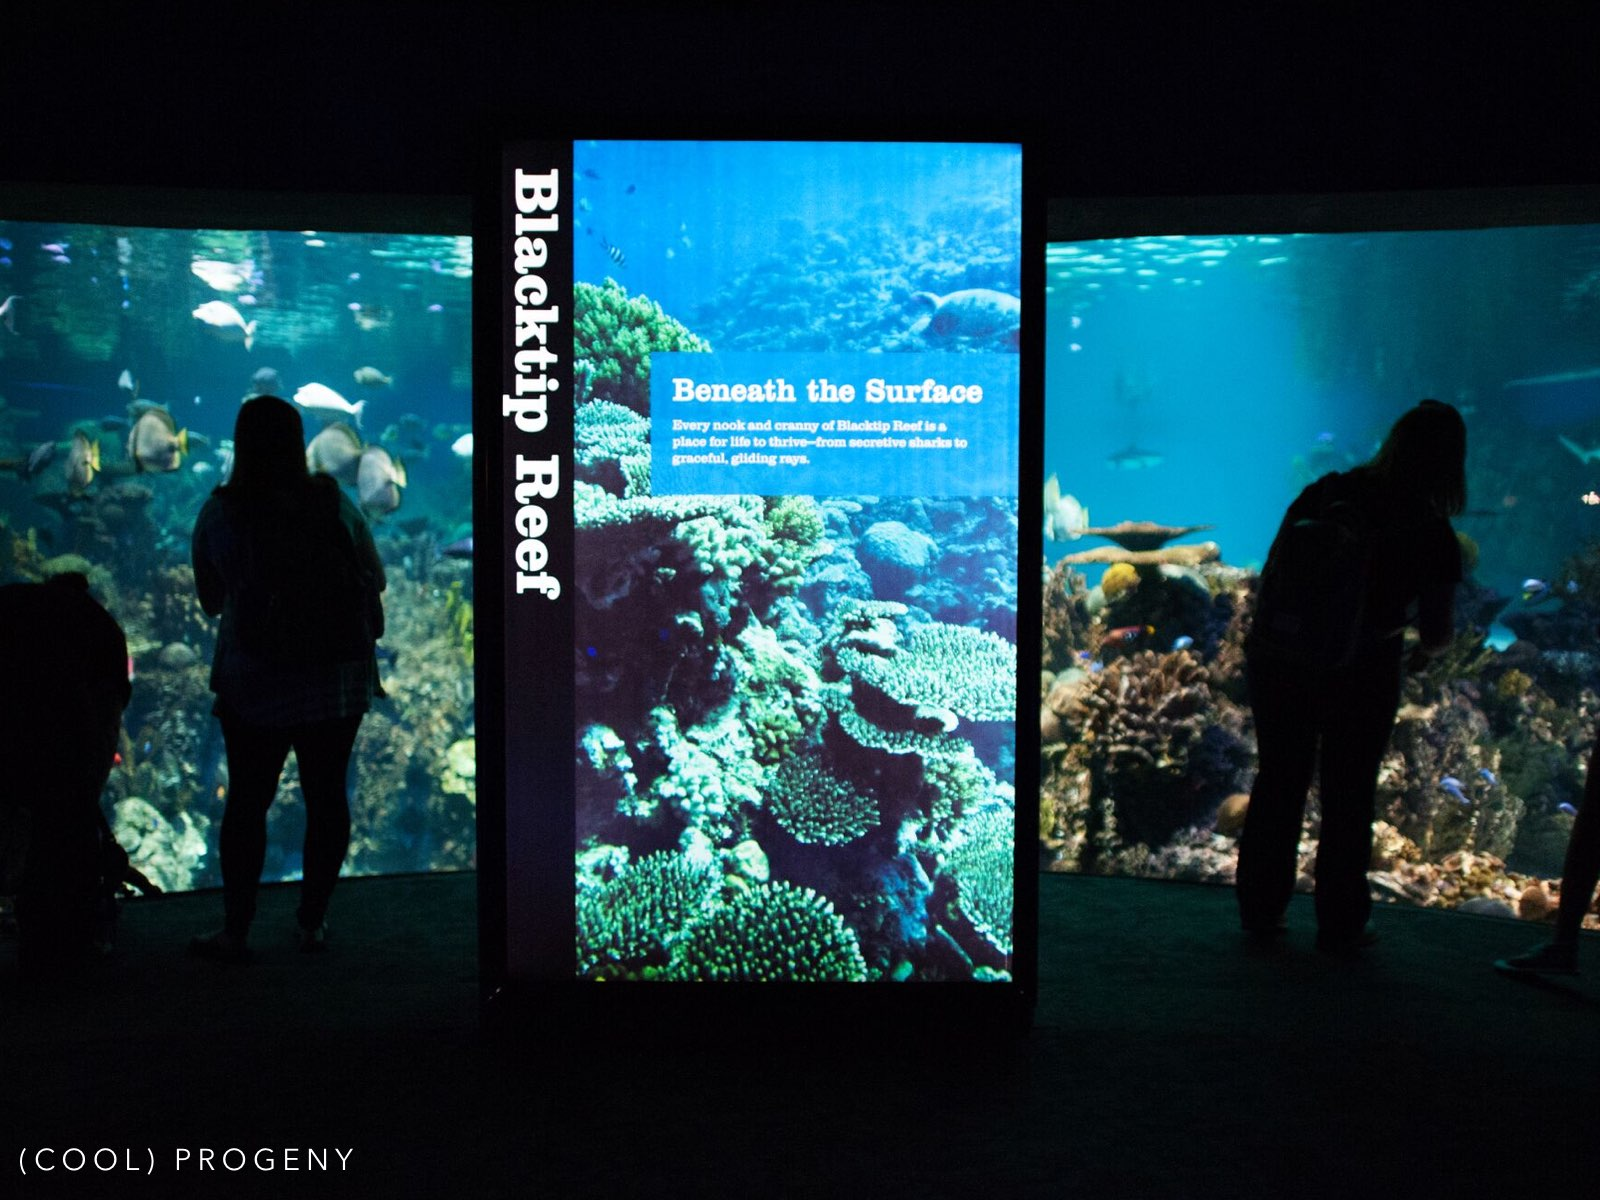 aquarium dating The weeknd and selena gomez went to toronto aquarium  from museum  trips to aquarium dates, these two know how to have fun.